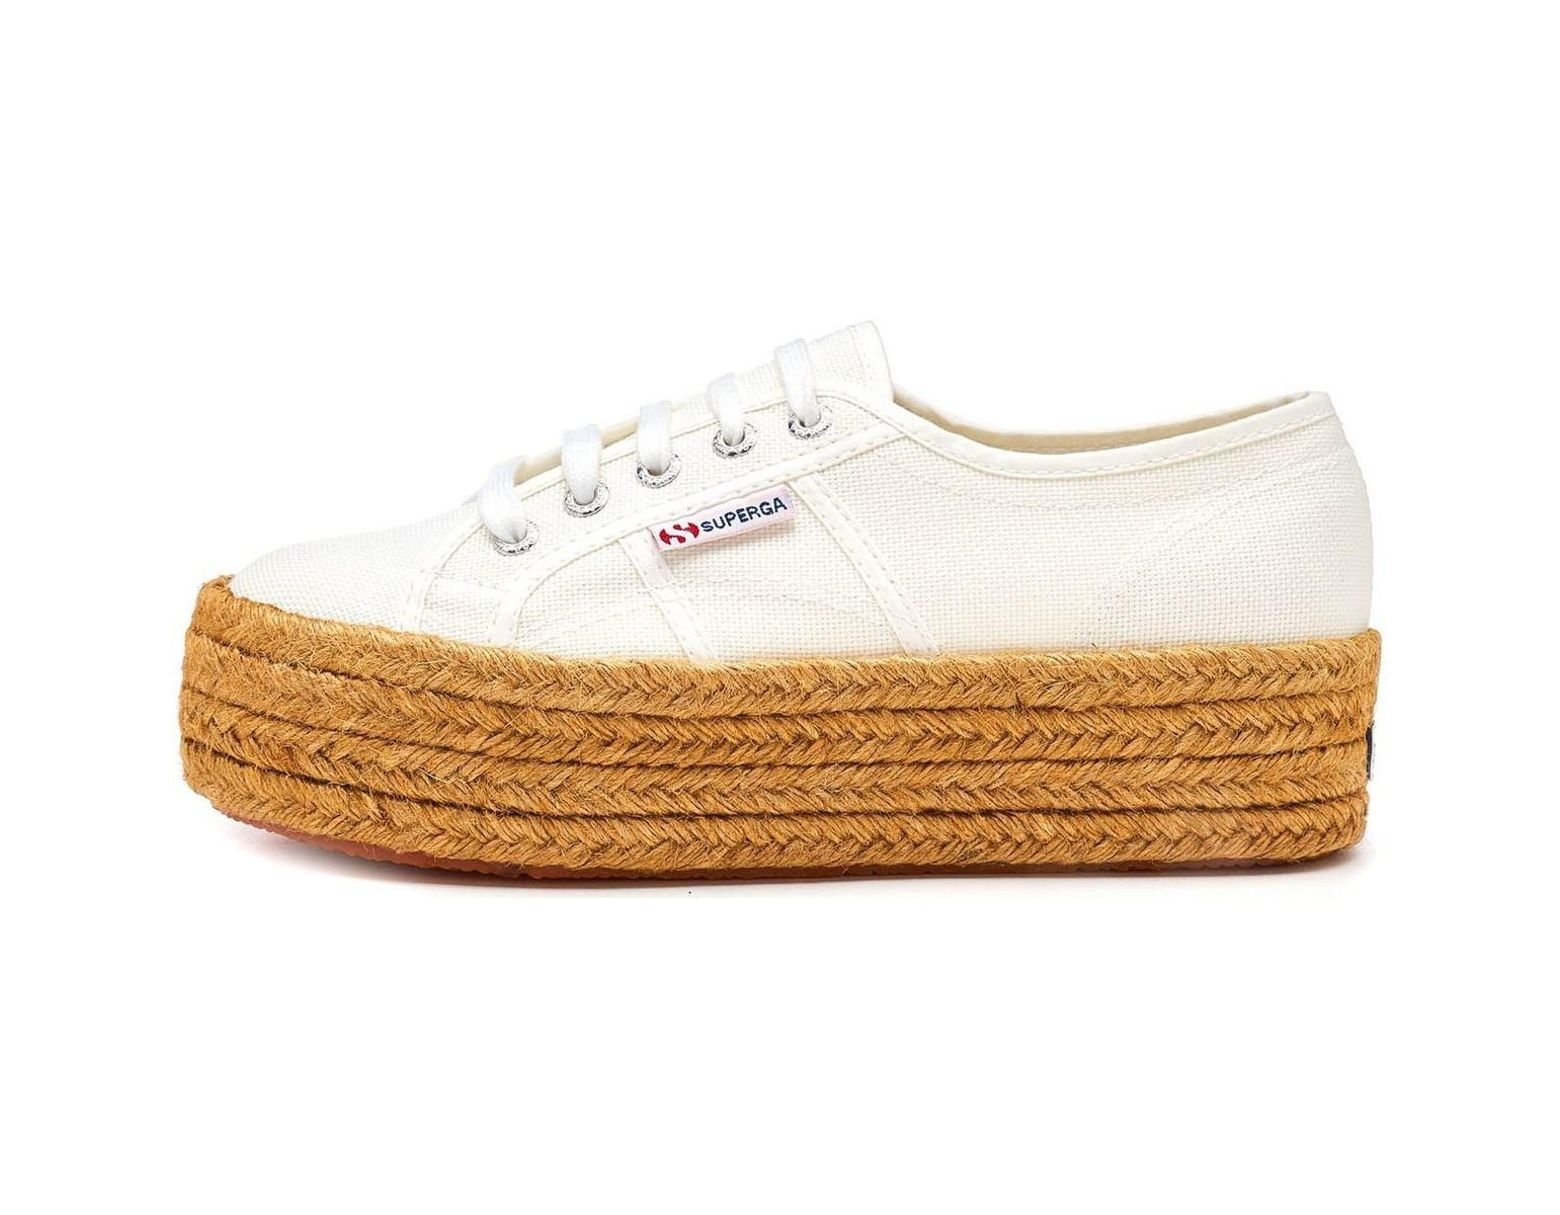 ab7fe68bd52ea Superga 2790 Cotropew Platform Plimsoll Shoes In White 901 Women's  Espadrilles / Casual Shoes In White in White - Lyst